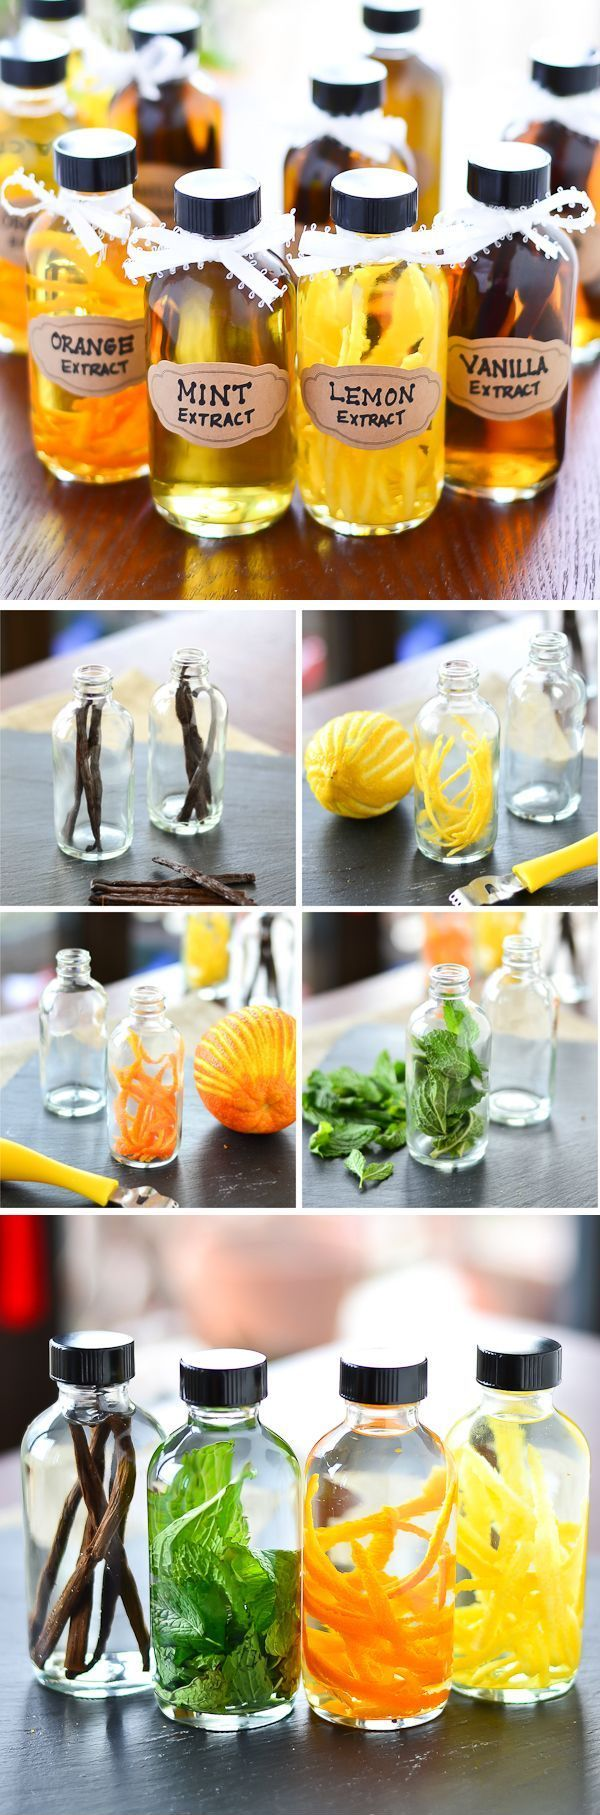 A real $$$ saver ~ DIY vanilla, lemon, orange, & mint extracts.  Add whole vanilla bean (Whole Foods or other health food grocery stores), citrus zest, or mint leaves to 1/2 cup vodka to small jar.  Seal & store in cool dark place for 4-6 weeks, then strain citrus & mint extracts & discard solids.  Vanilla beans are ok to leave in the bottle.   @carebearmsw  ;-)